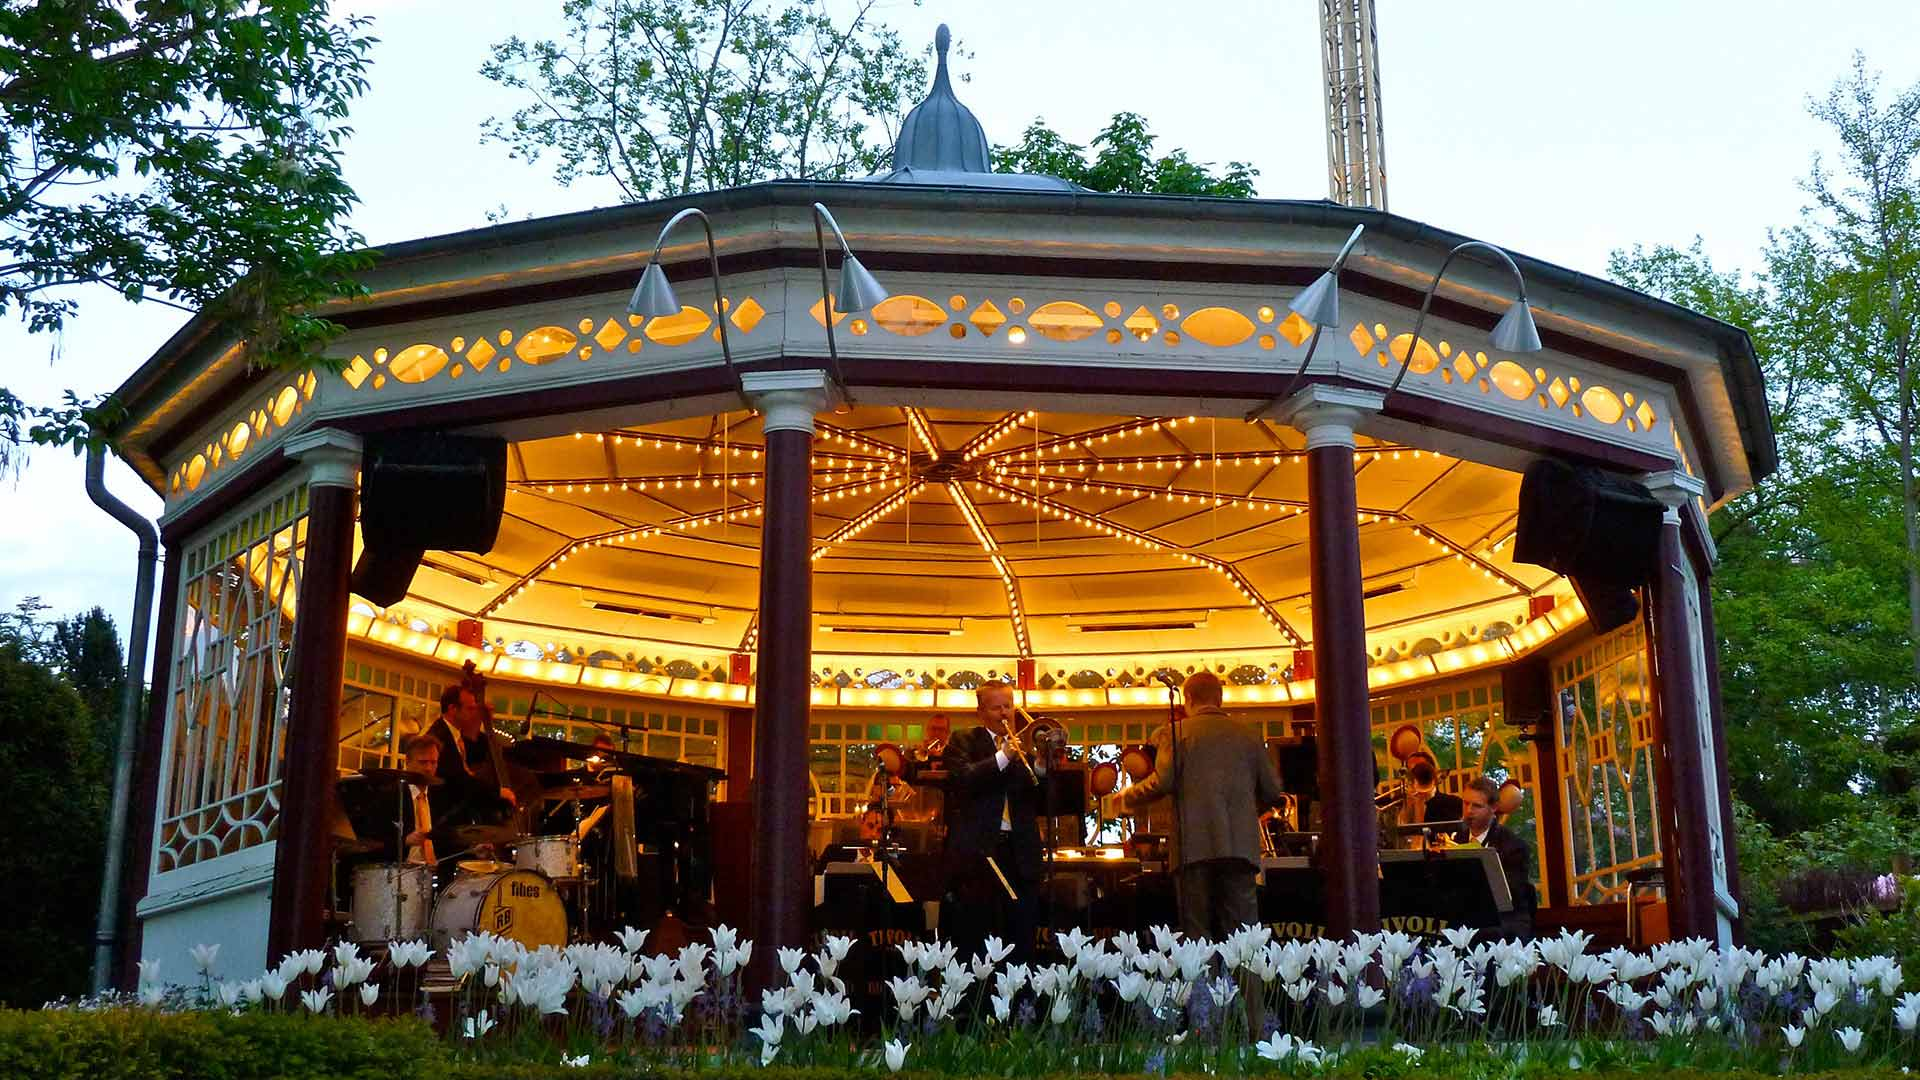 tivoli personals The last time they played tivoli, the gardens were overwhelmed by the number of people who turned up, and their fanbase has only grown since then.